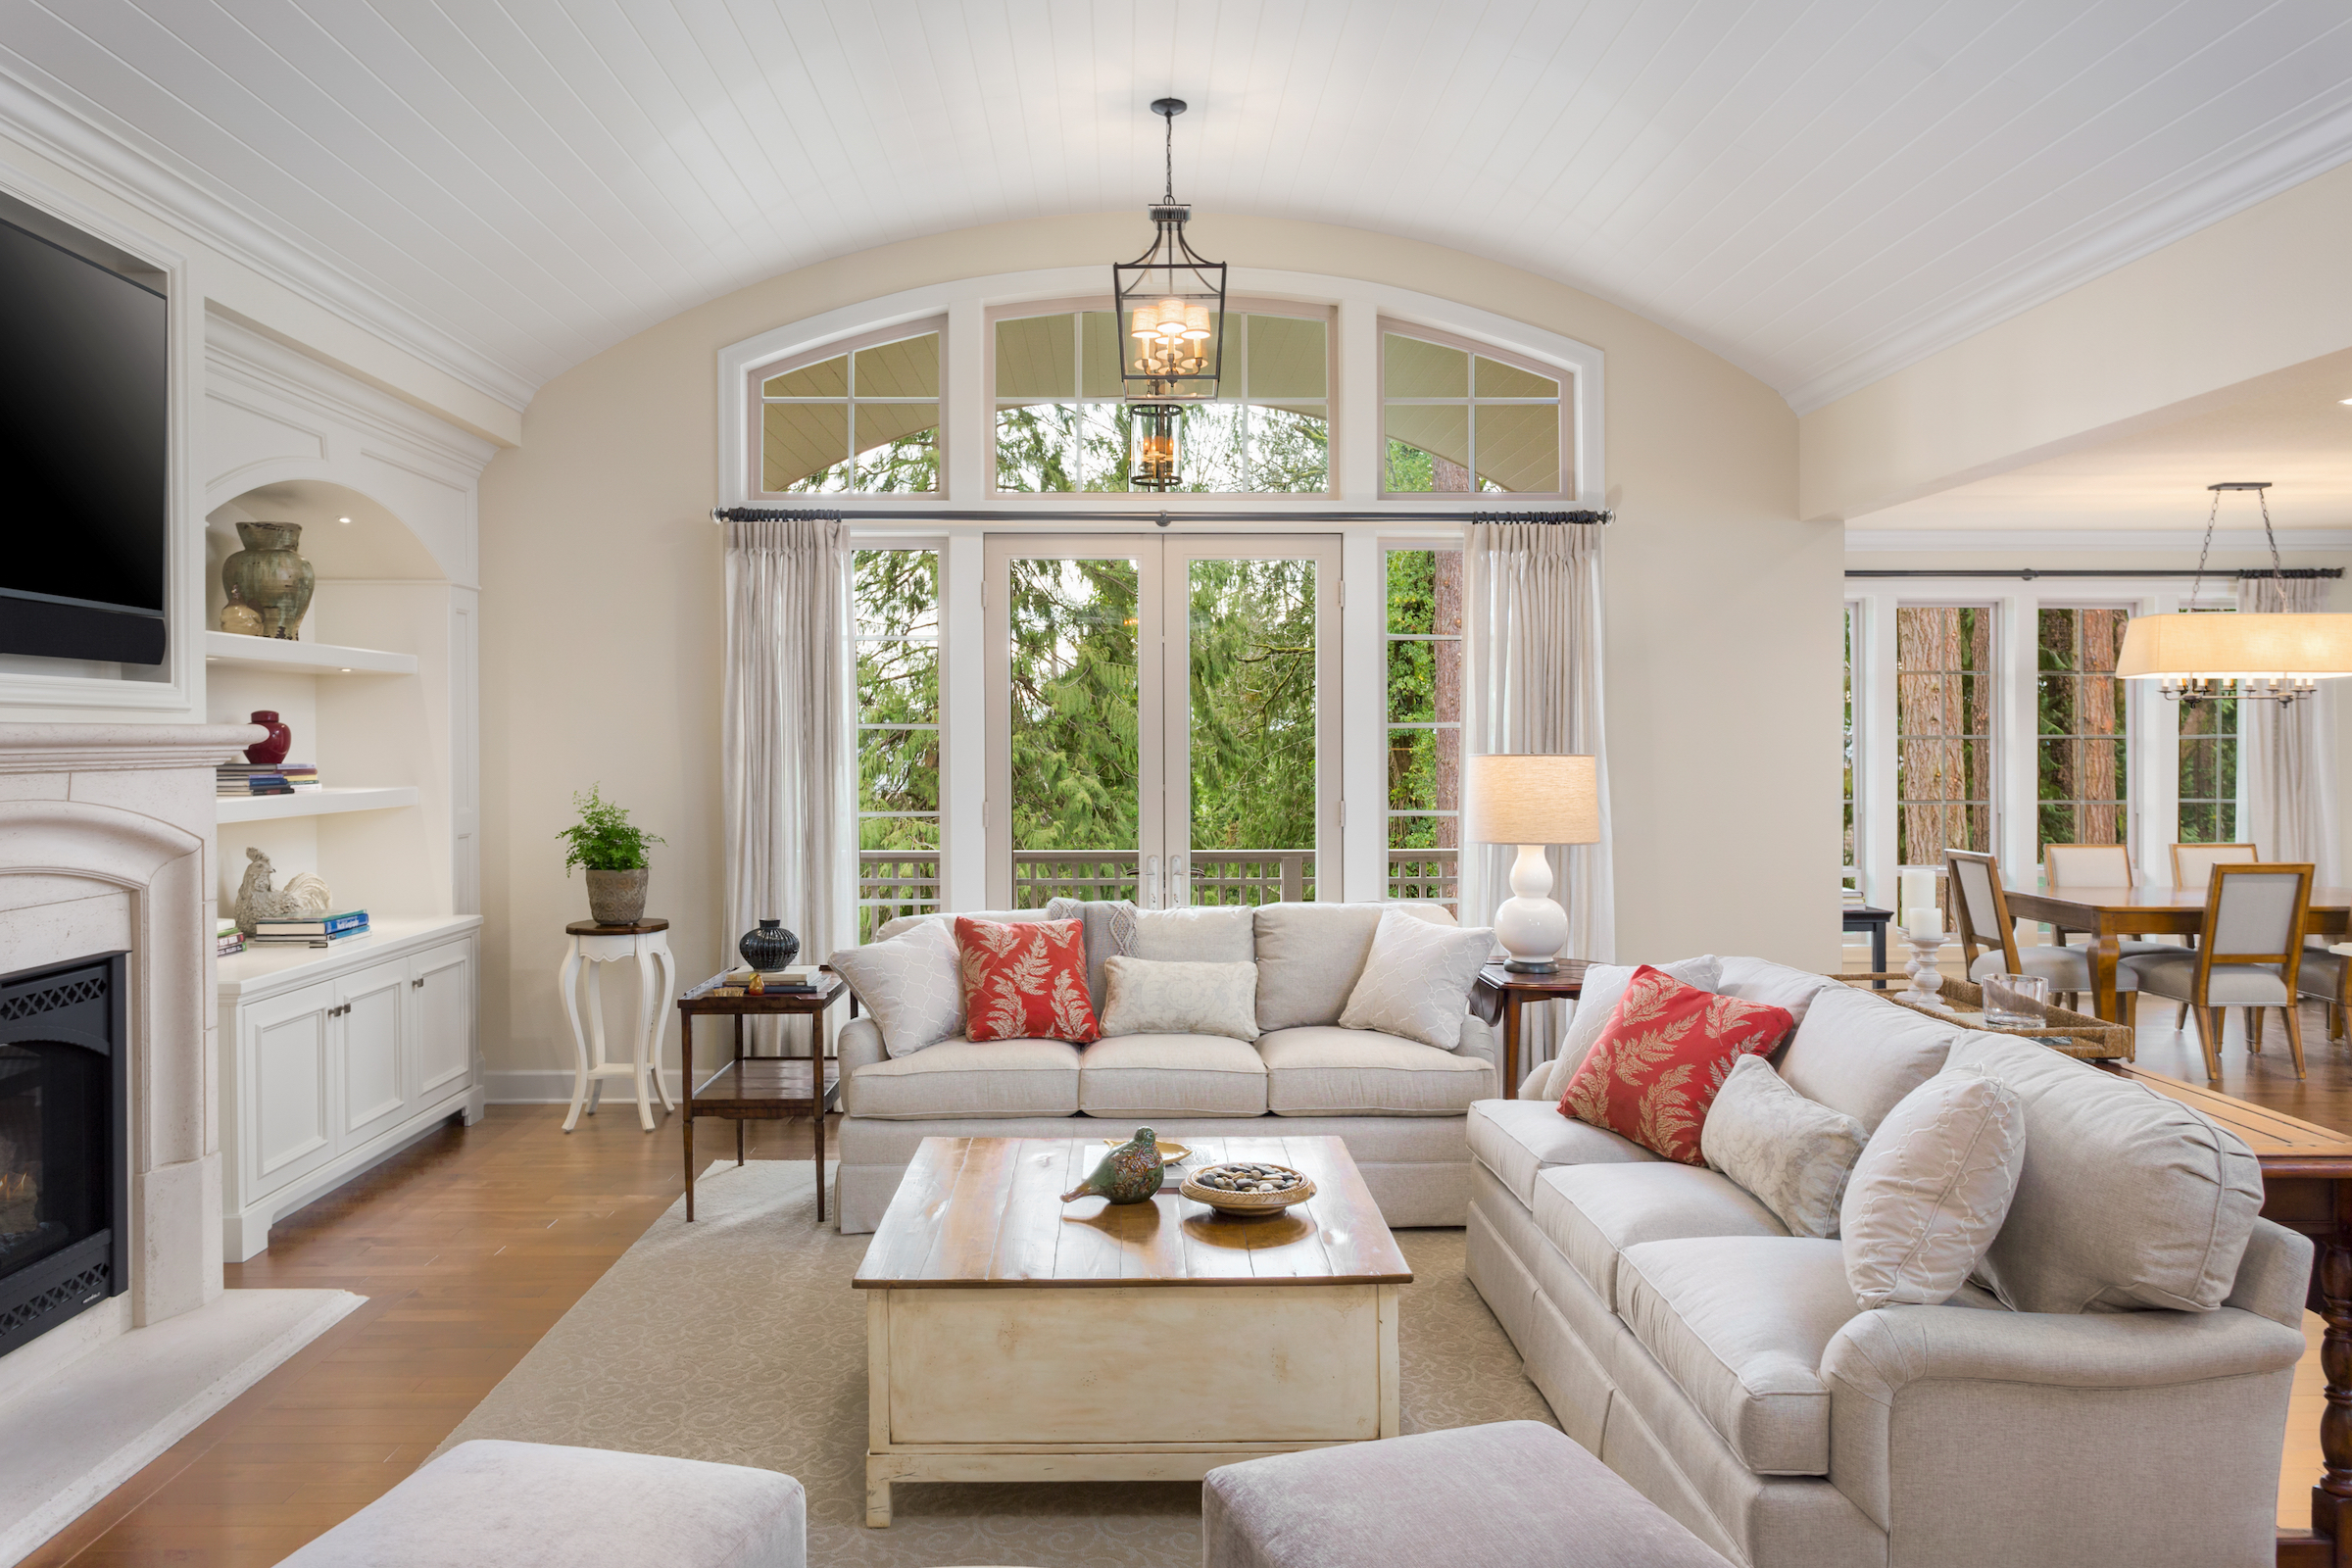 The Best Living Room Design Ideas for a Functional and ...